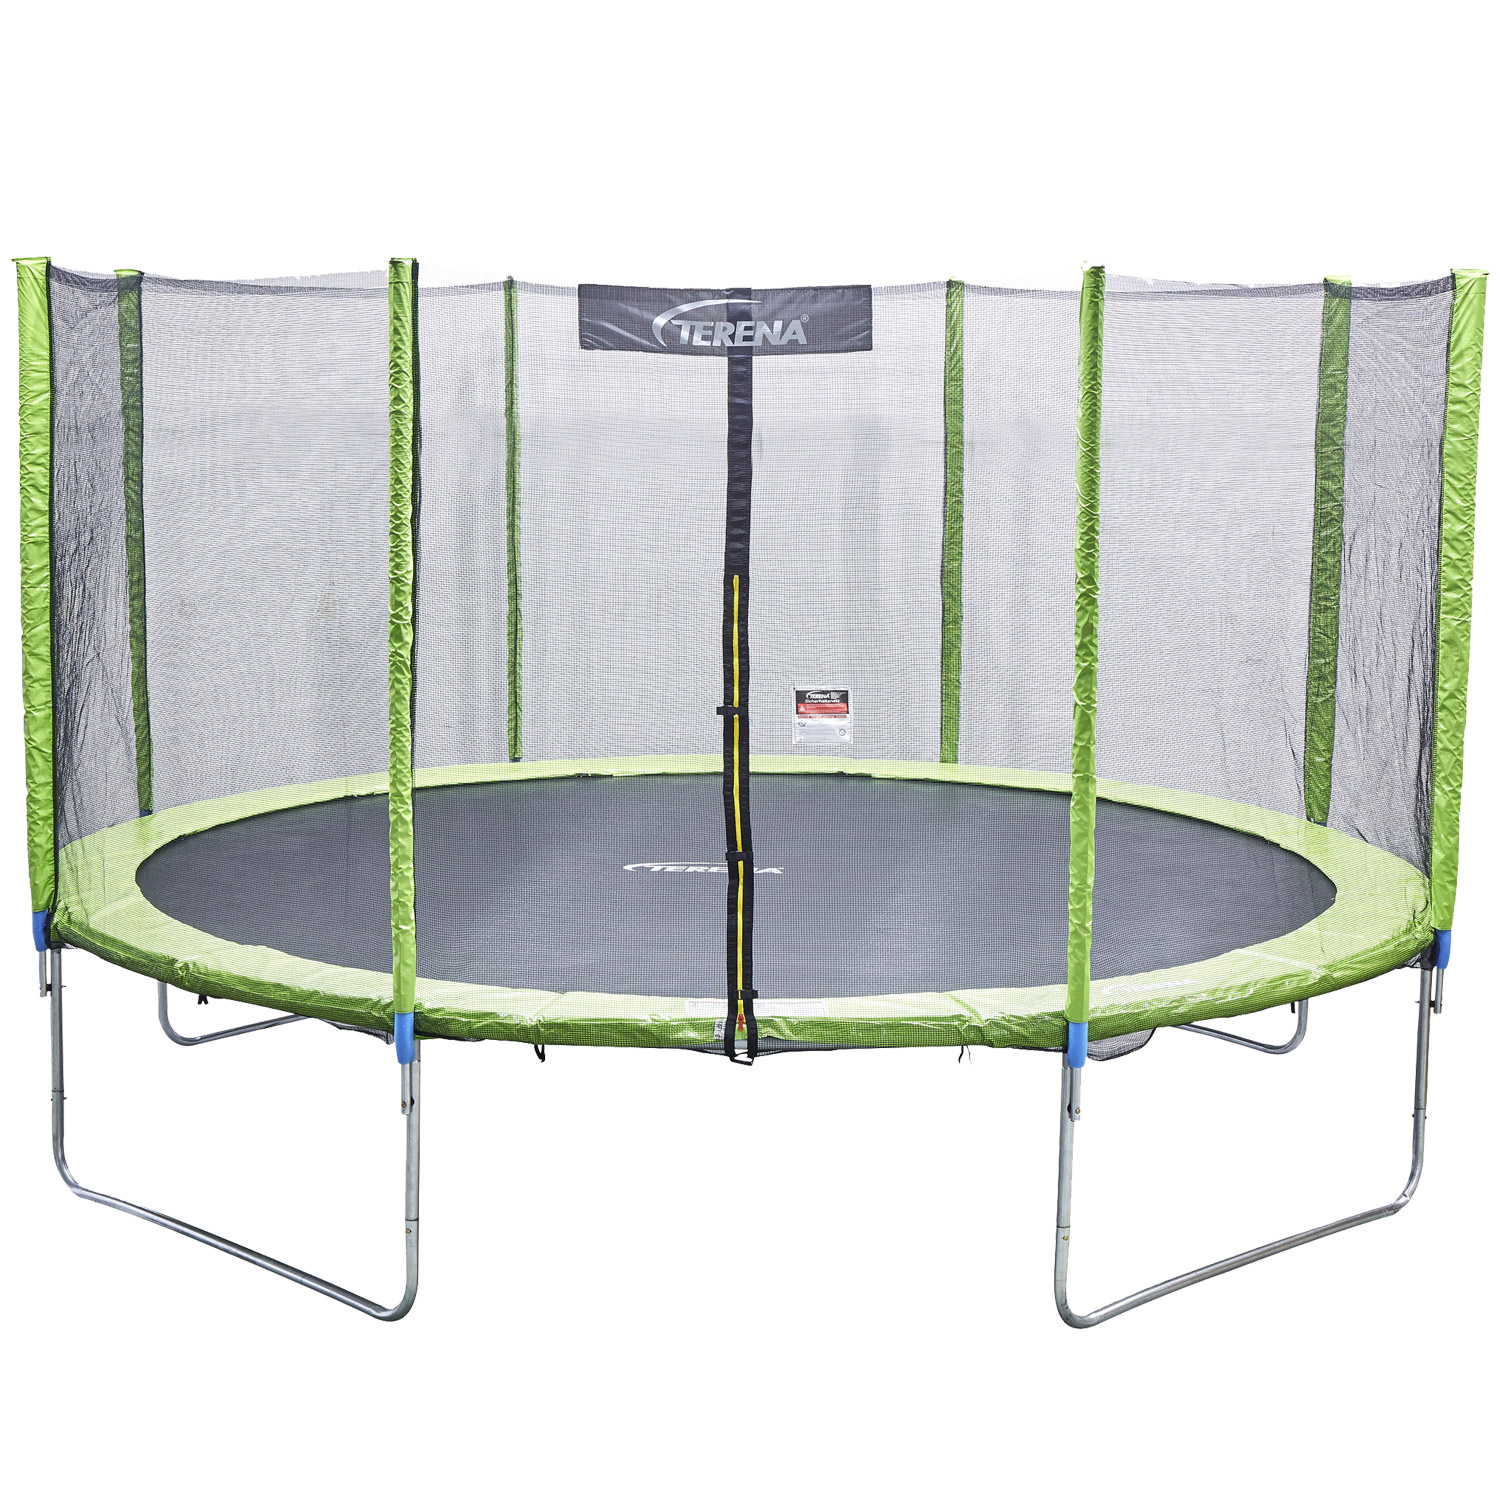 trampolin 366 cm mit netz sicherheitsnetz gartentrampolin f r kinder 12ft gr n ebay. Black Bedroom Furniture Sets. Home Design Ideas